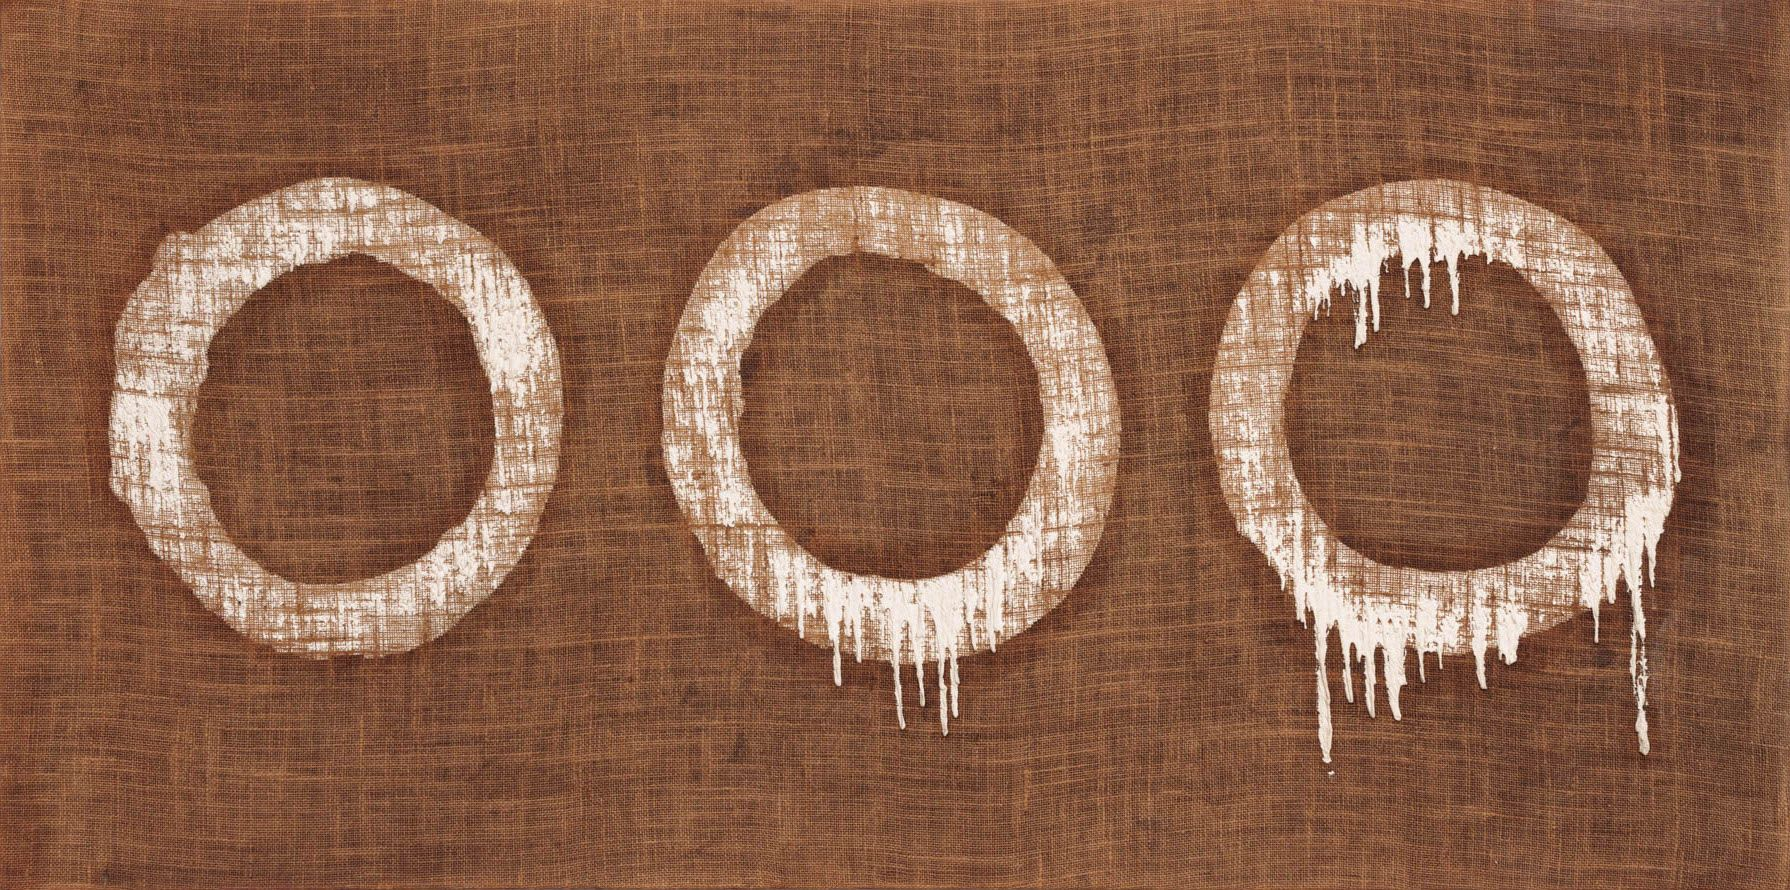 Ha Chong-Hyun (b. 1935) Conjunction 79-79, 1979 Oil on hemp canvas 31 1/2 x 62 3/5 inches 80 x 159 cm